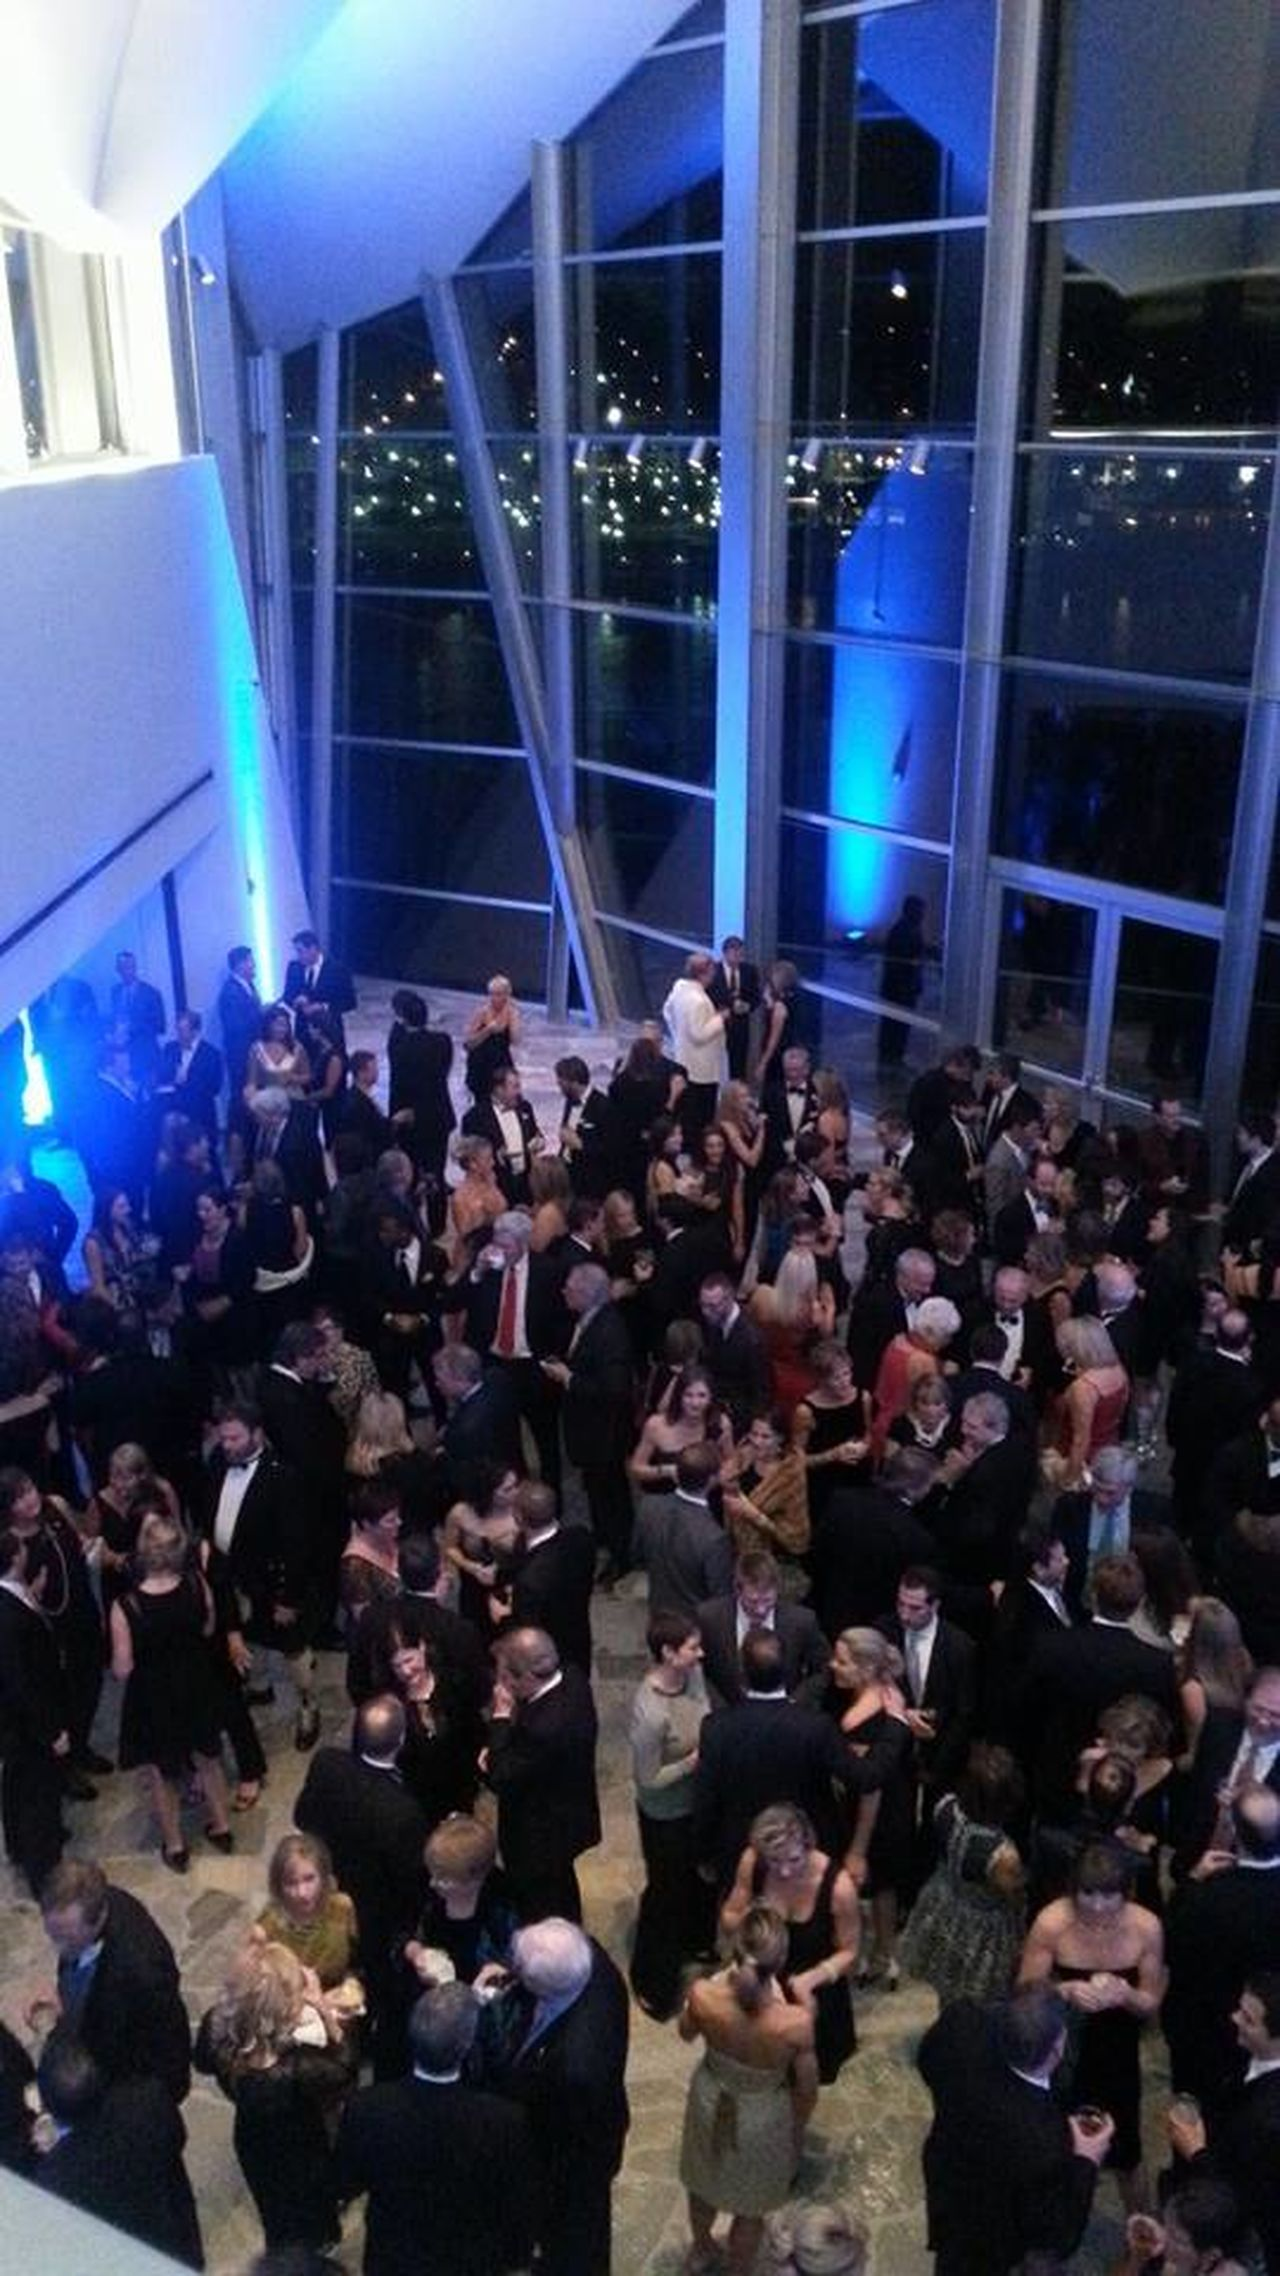 Arts Culture And Entertainment Black Tie Party Celebration Chattanooga Christmas Party City Lights Crowd Dancing Festive High Ceilings Hunter Museum Large Group Of People Party